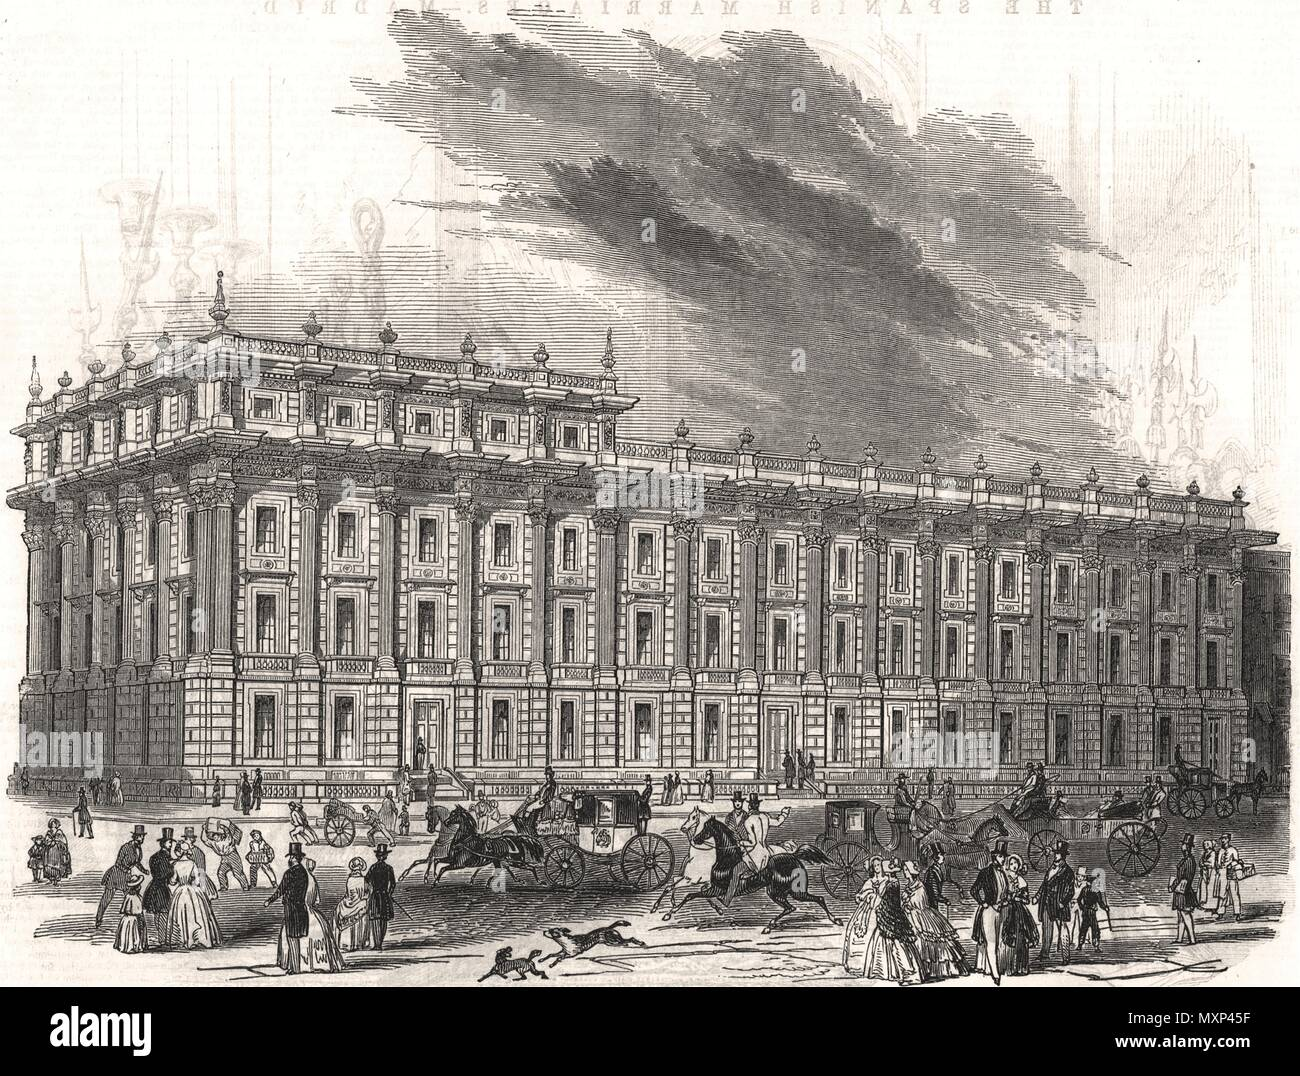 The new Privy Council office, Whitehall. Charles Barry. London 1846. The Illustrated London News - Stock Image